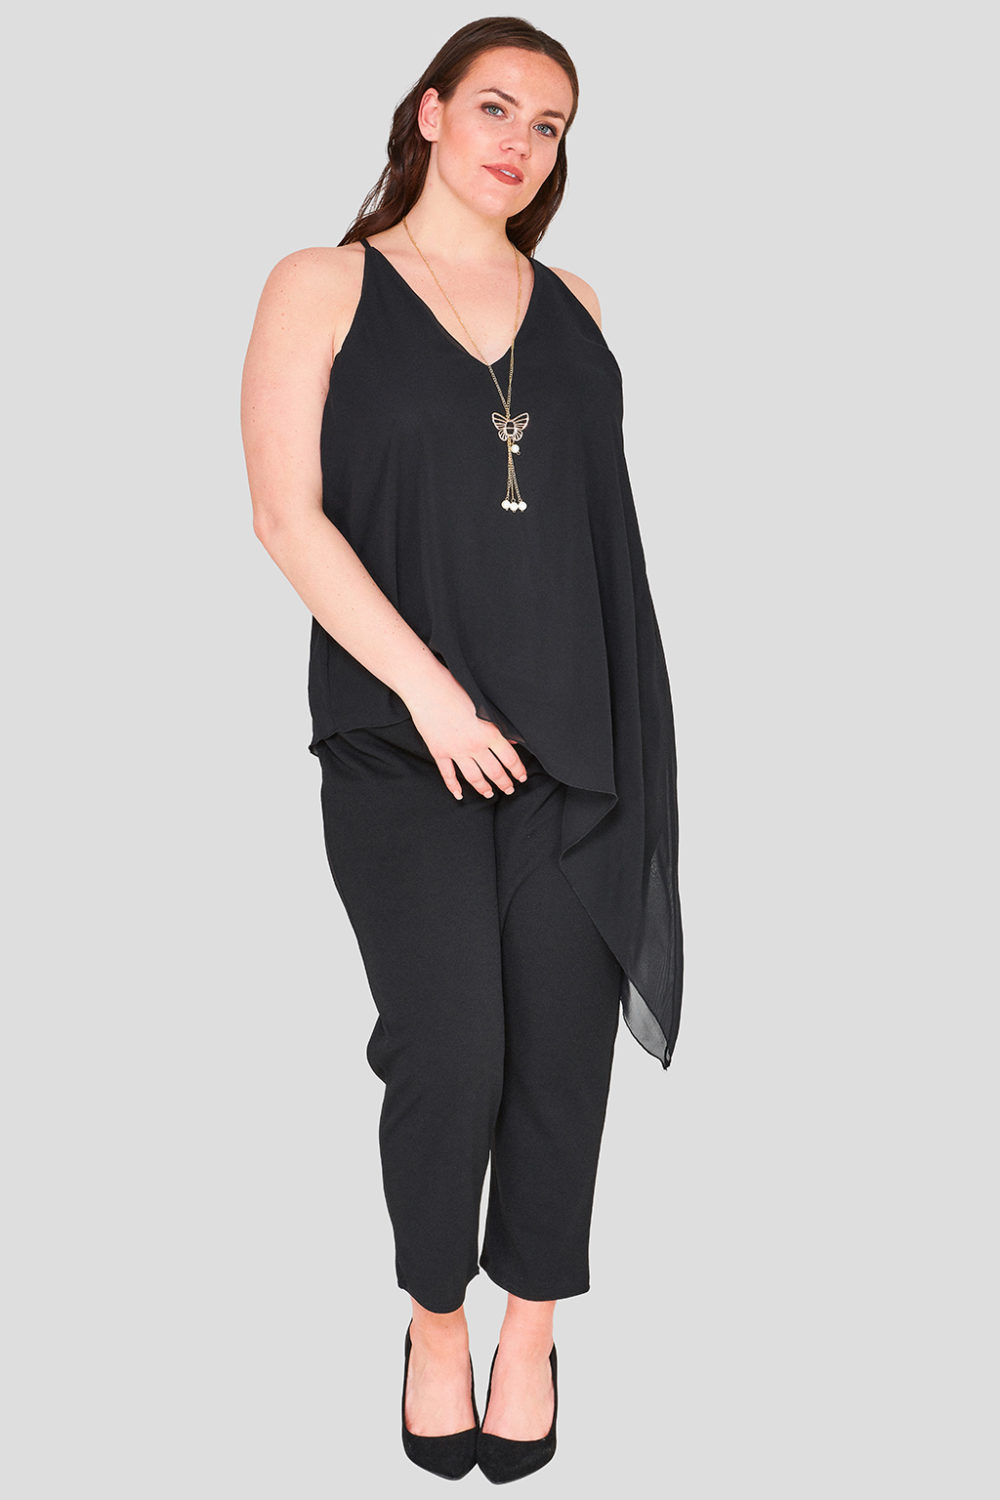 Asymmetric V Neck Cami Plus Size Wholesale Top